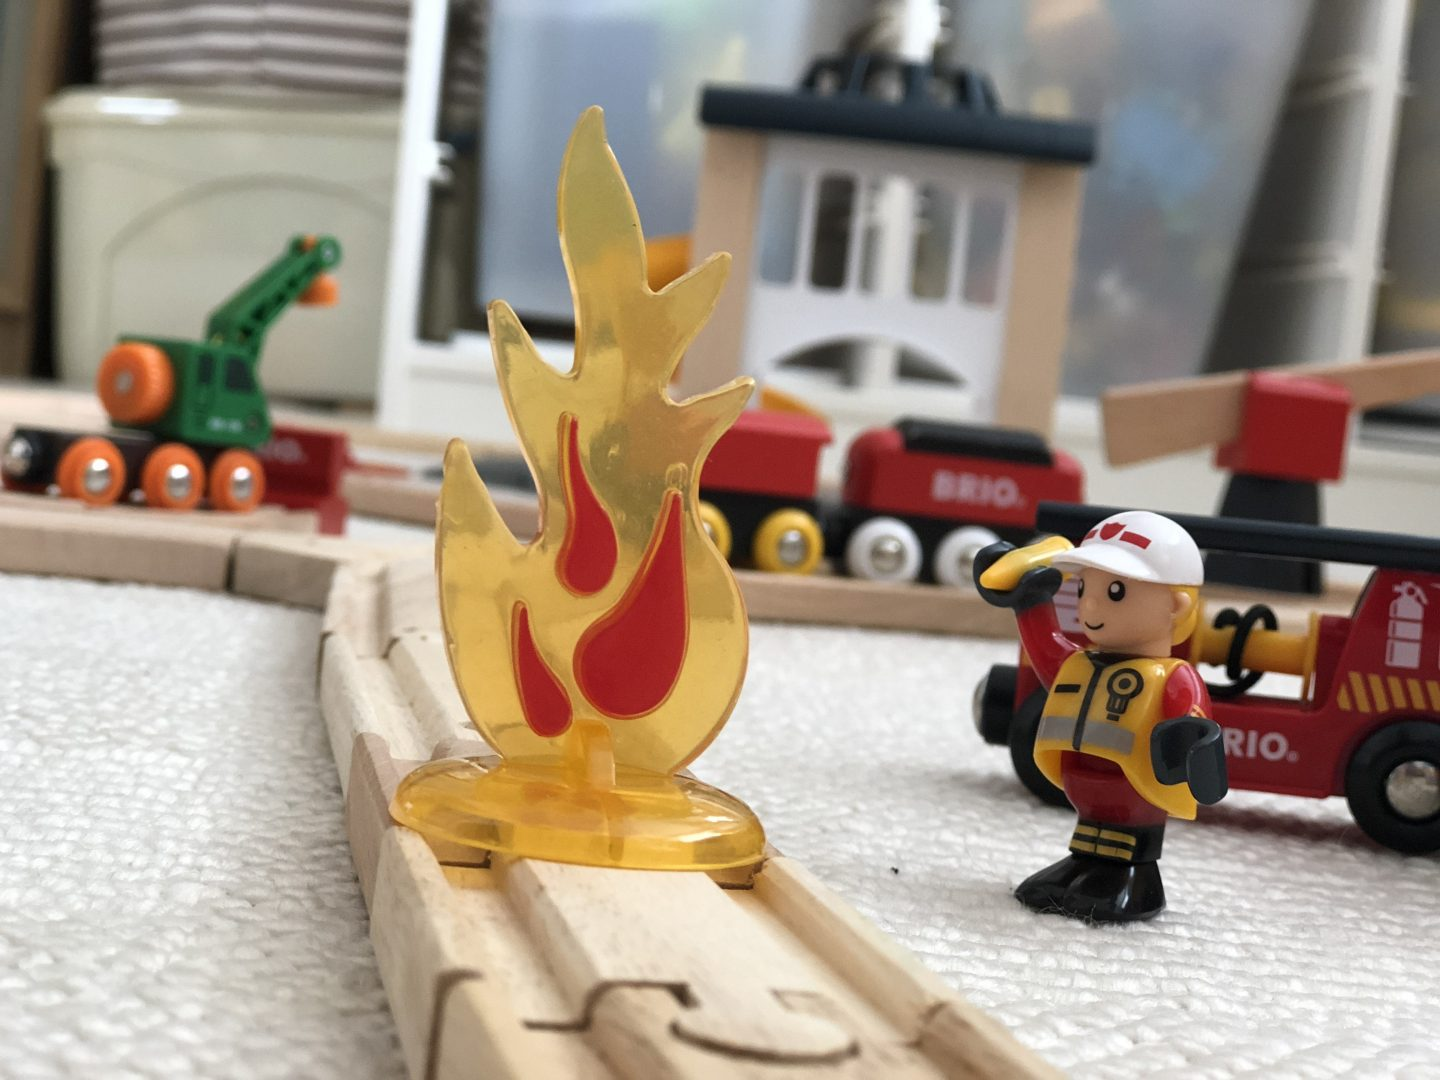 Fire on the BRIO train track fire engine man to put out